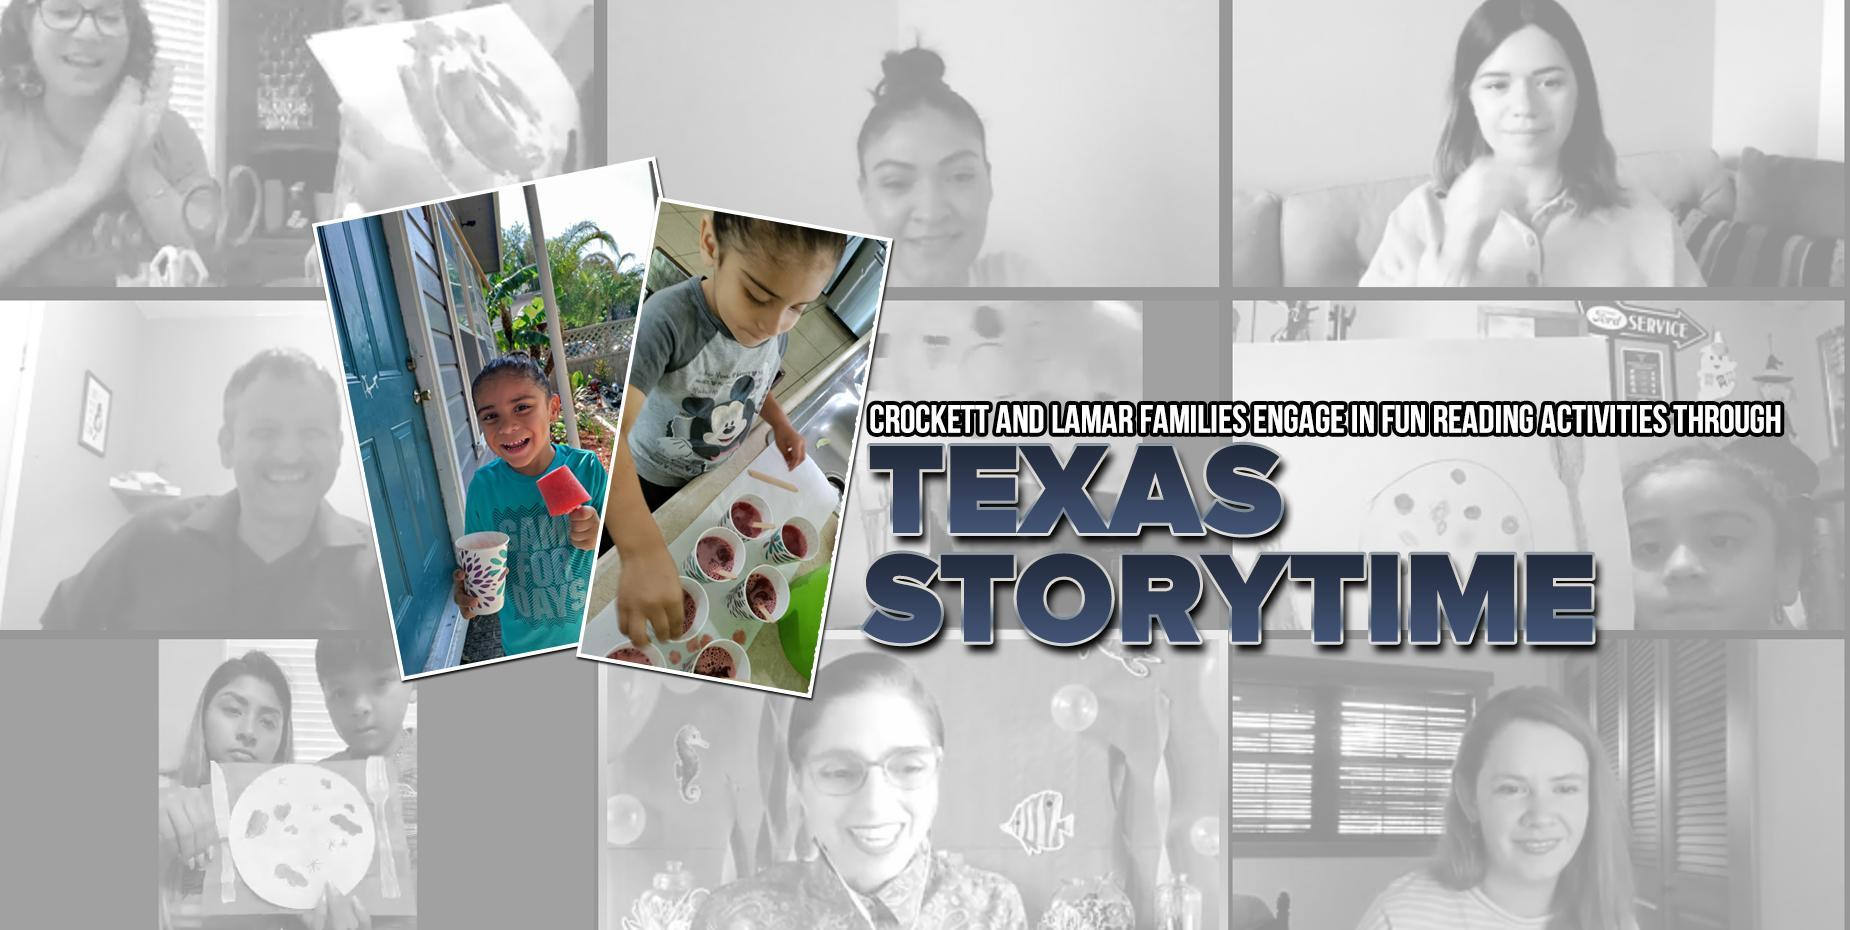 Crockett and Lamar families engage in fun reading activities through Texas Storytime